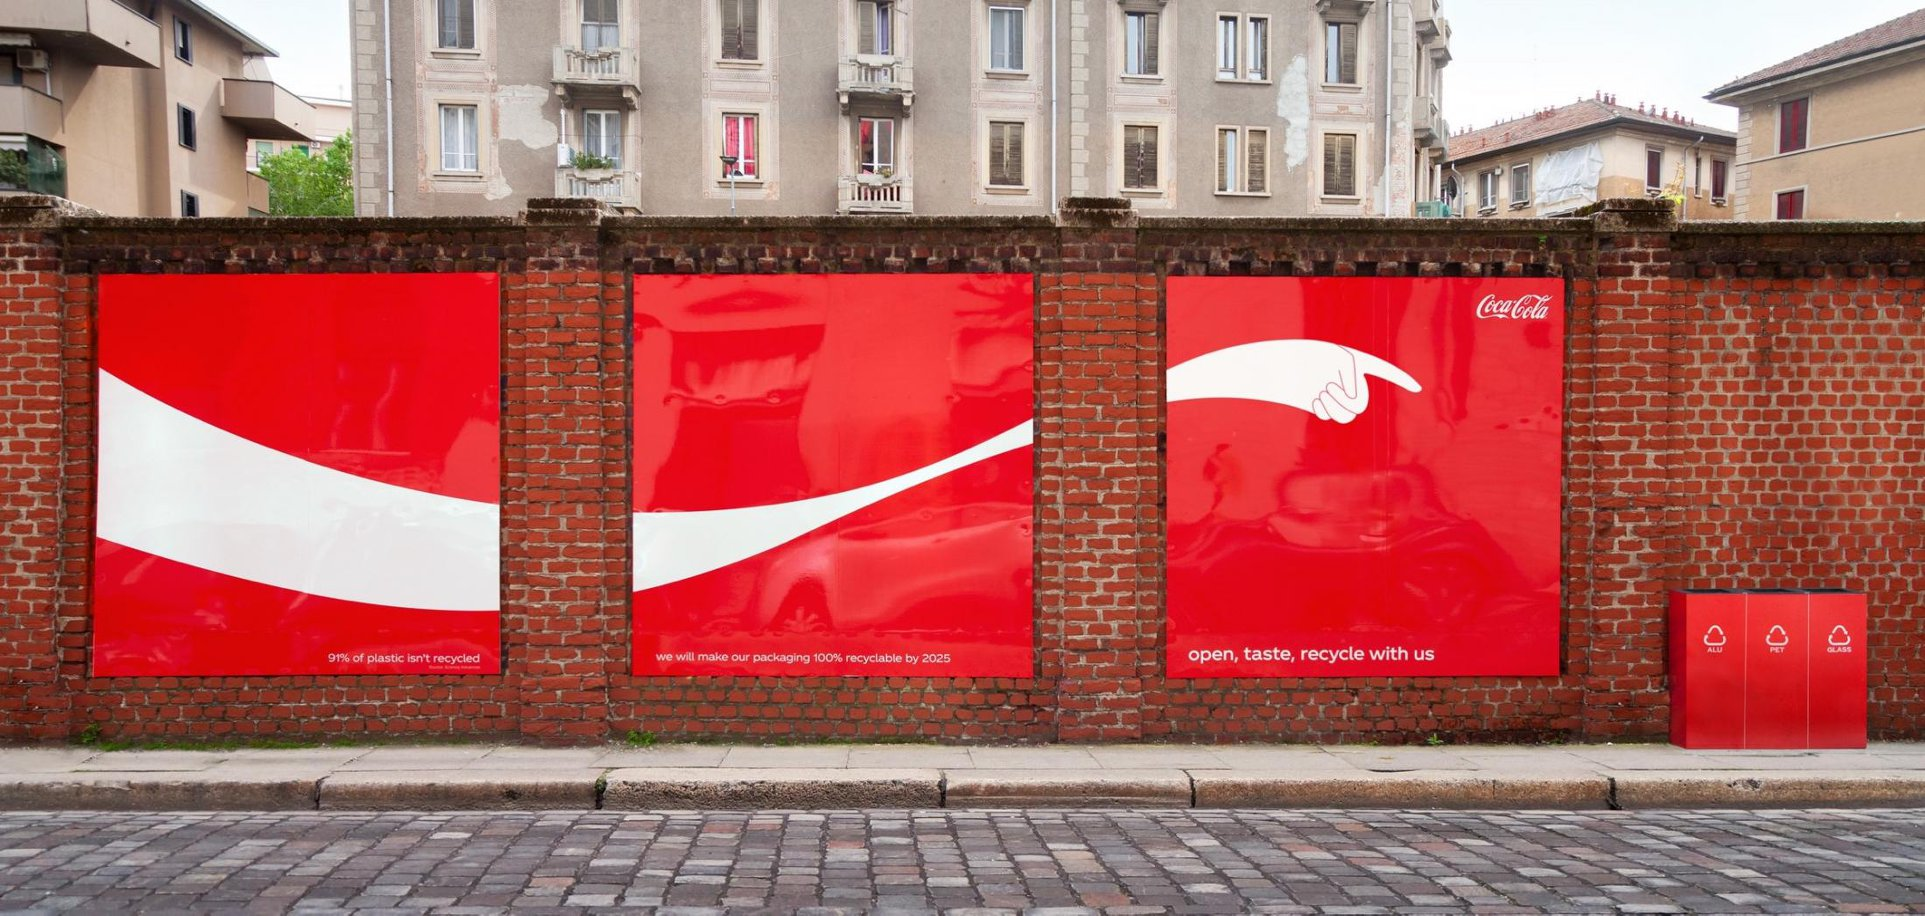 Coca Cola's Campaign to Recycle